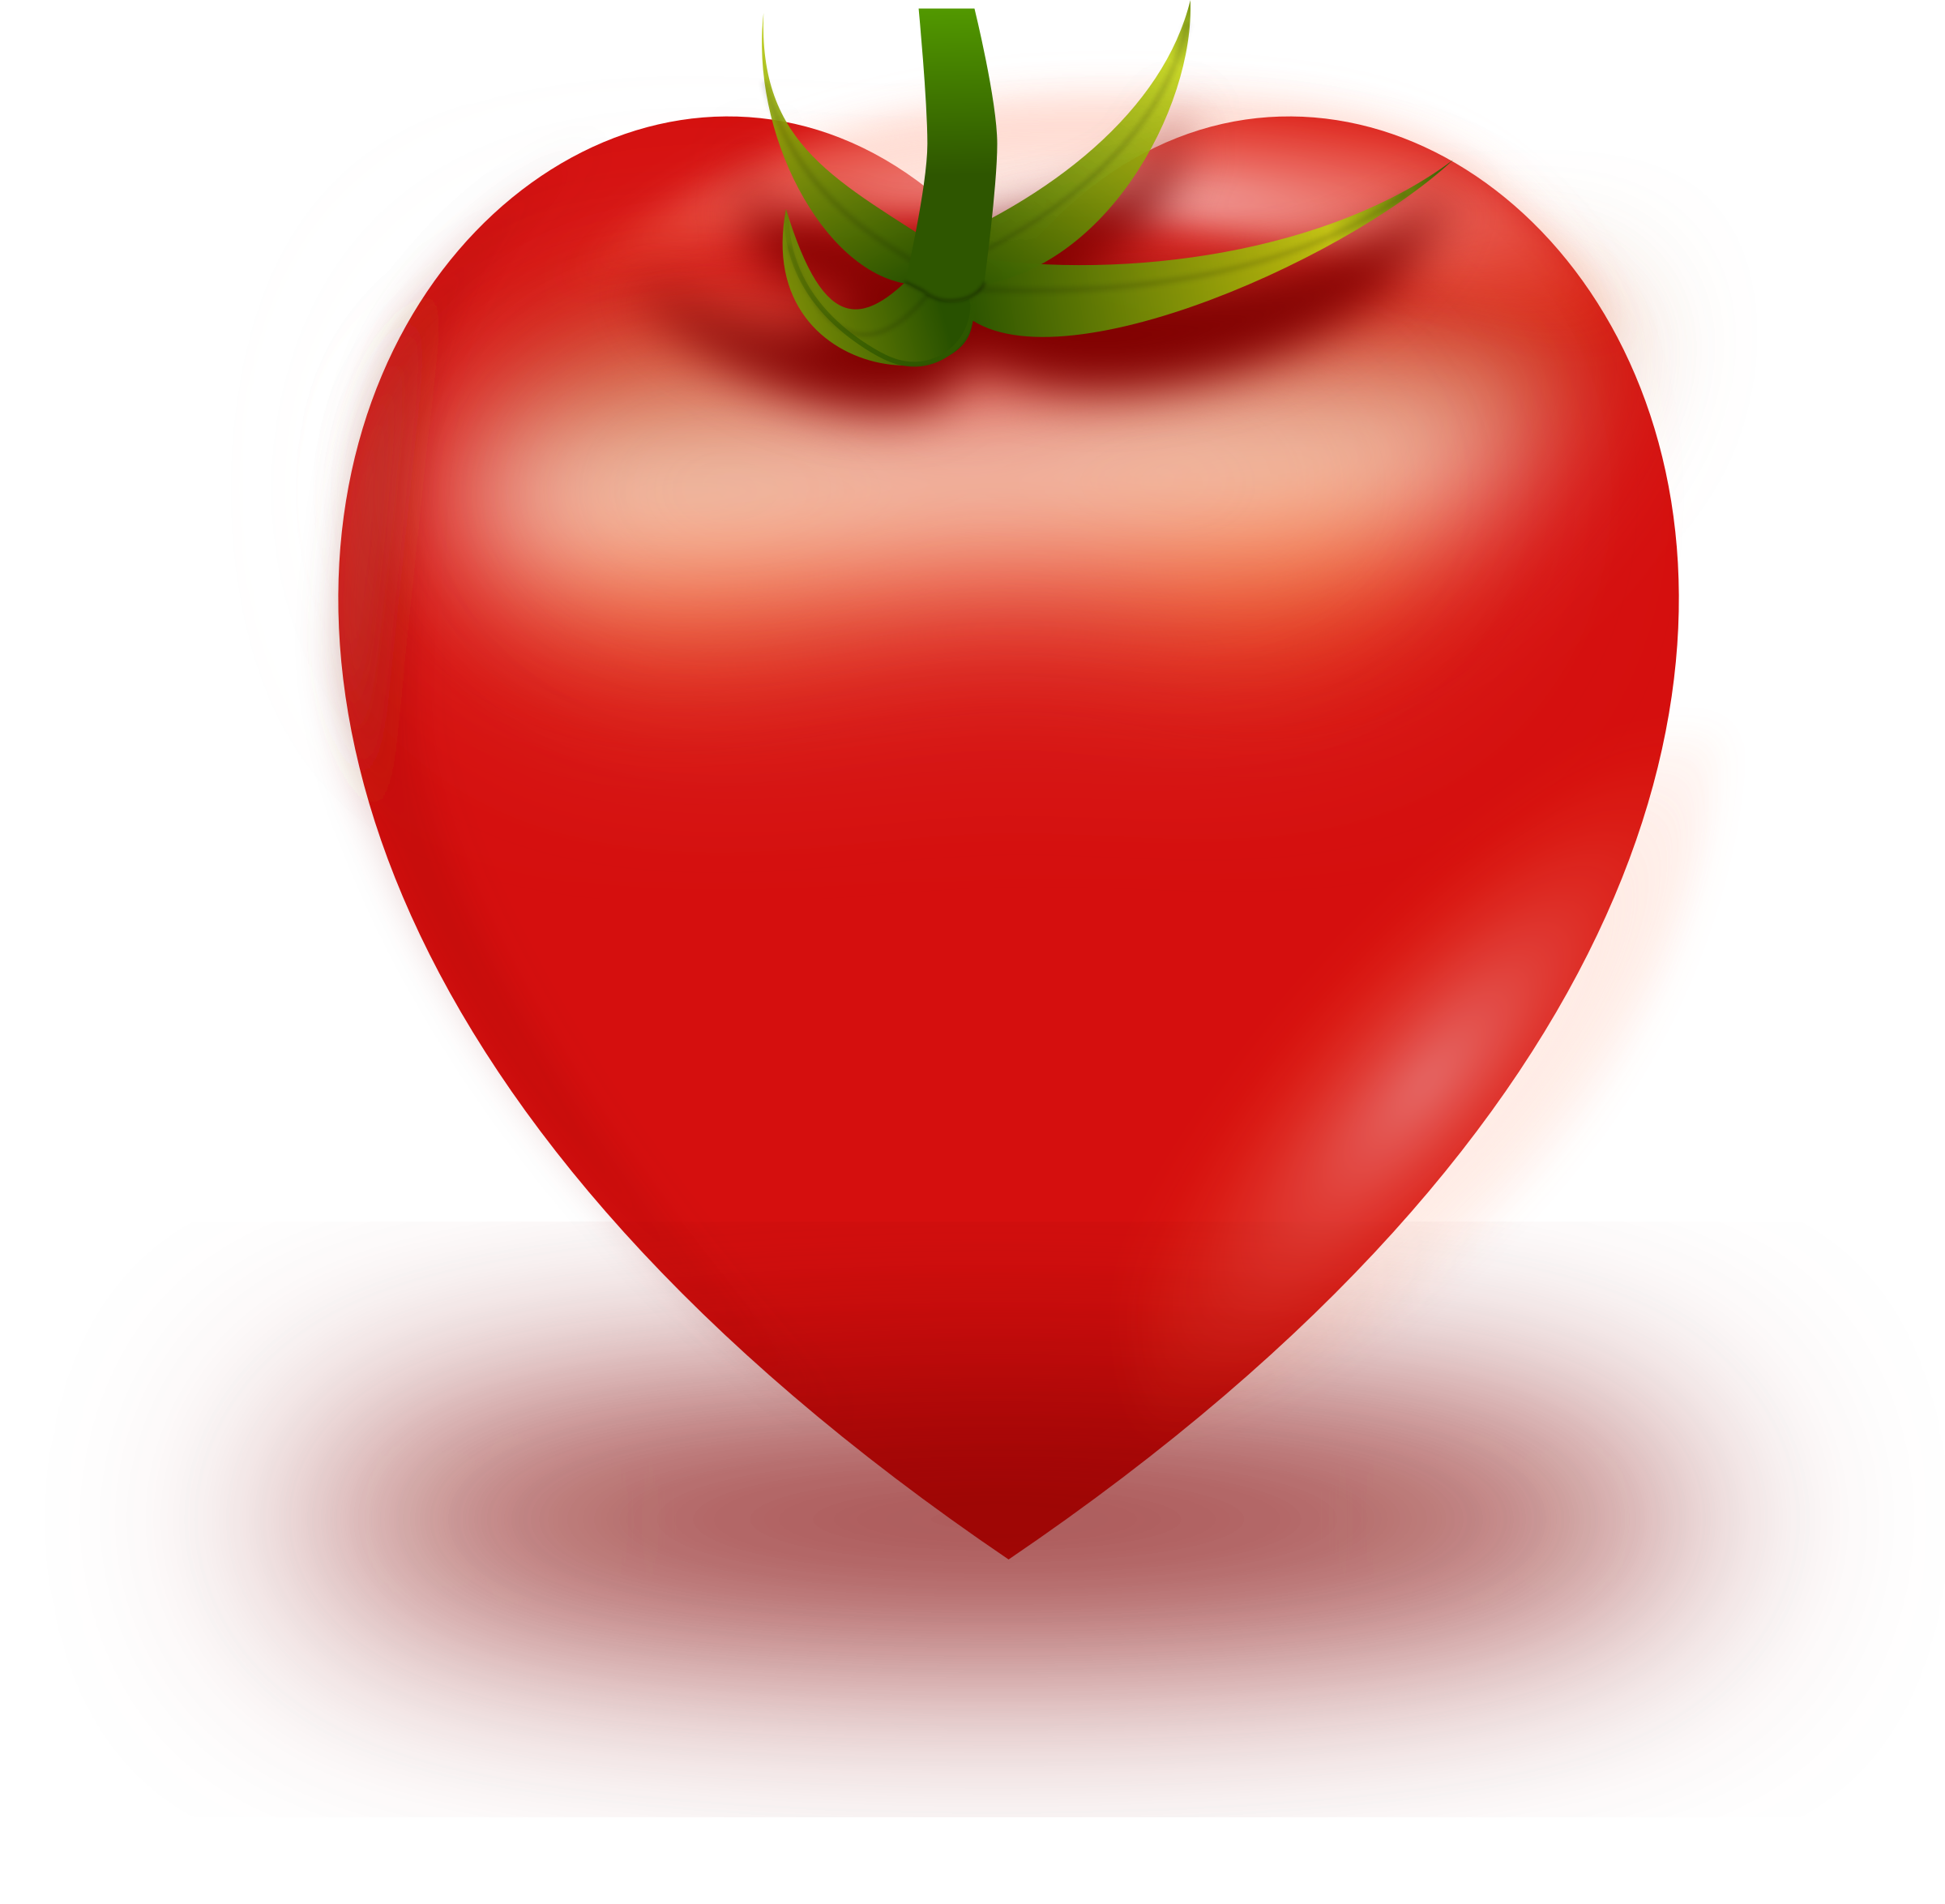 Vector tomato big image. Heart clipart fruit